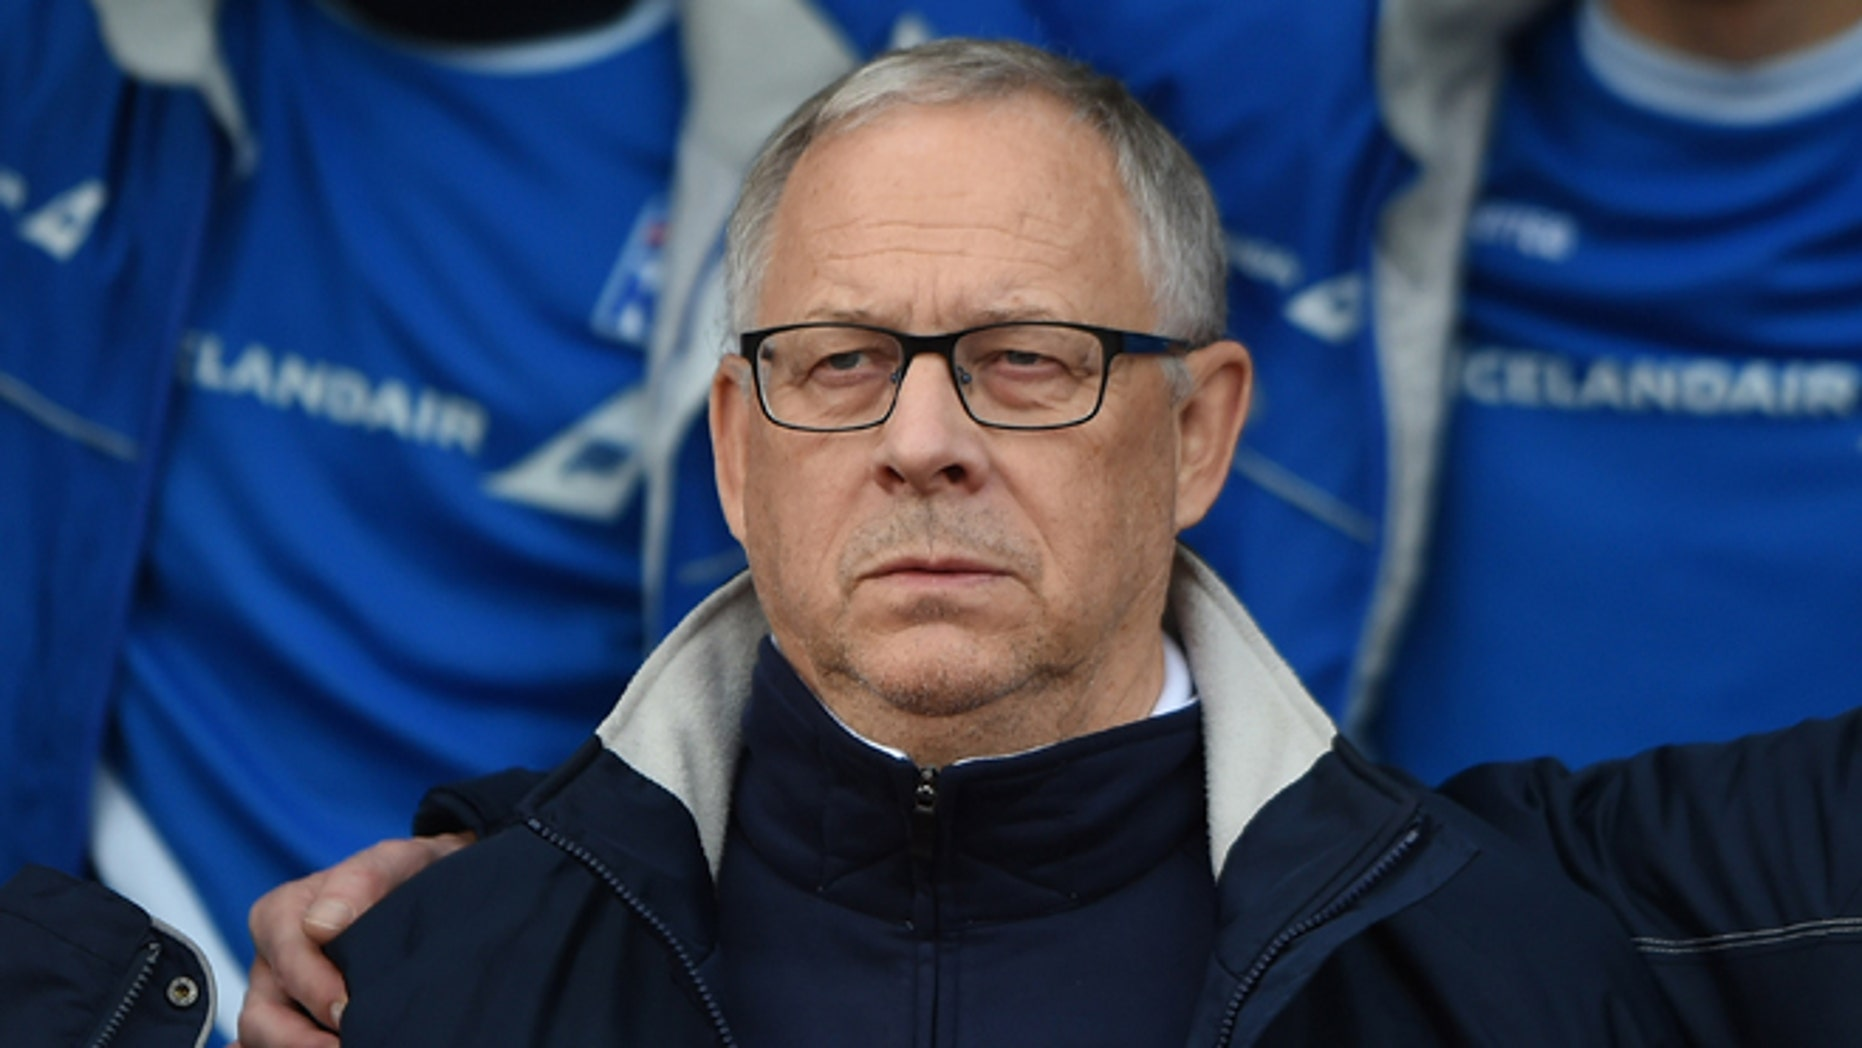 REYKJAVIK, ICELAND - OCTOBER 10:  Manager of Iceland Lars Lagerback looks on during the UEFA EURO 2016 Qualifier match between Iceland and Latvia at Laugardalsvollur National Stadium on October 10, 2015 in Reykjavik, Iceland. (Photo by Tom Dulat/Getty Images).